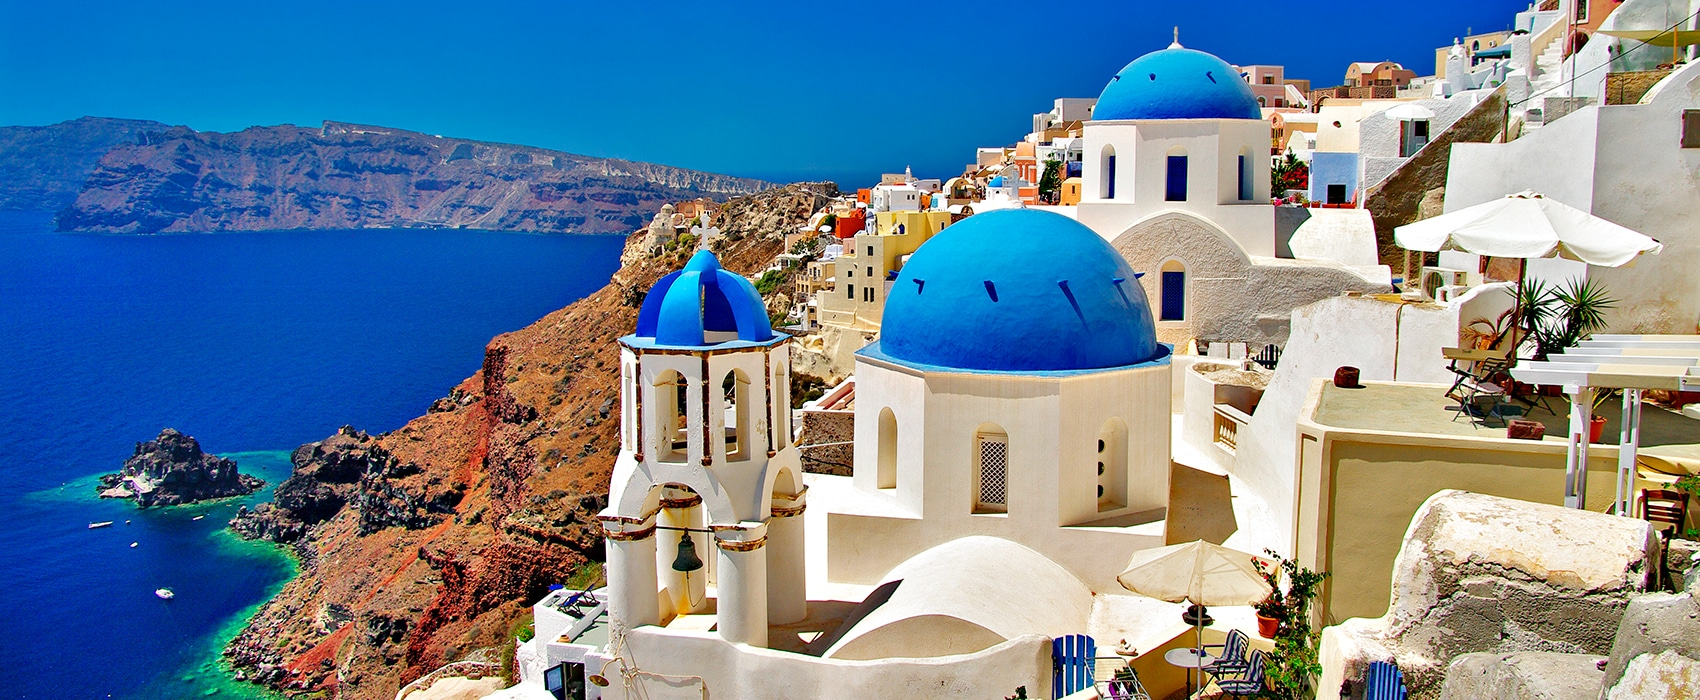 santorini desire greek islands cruise